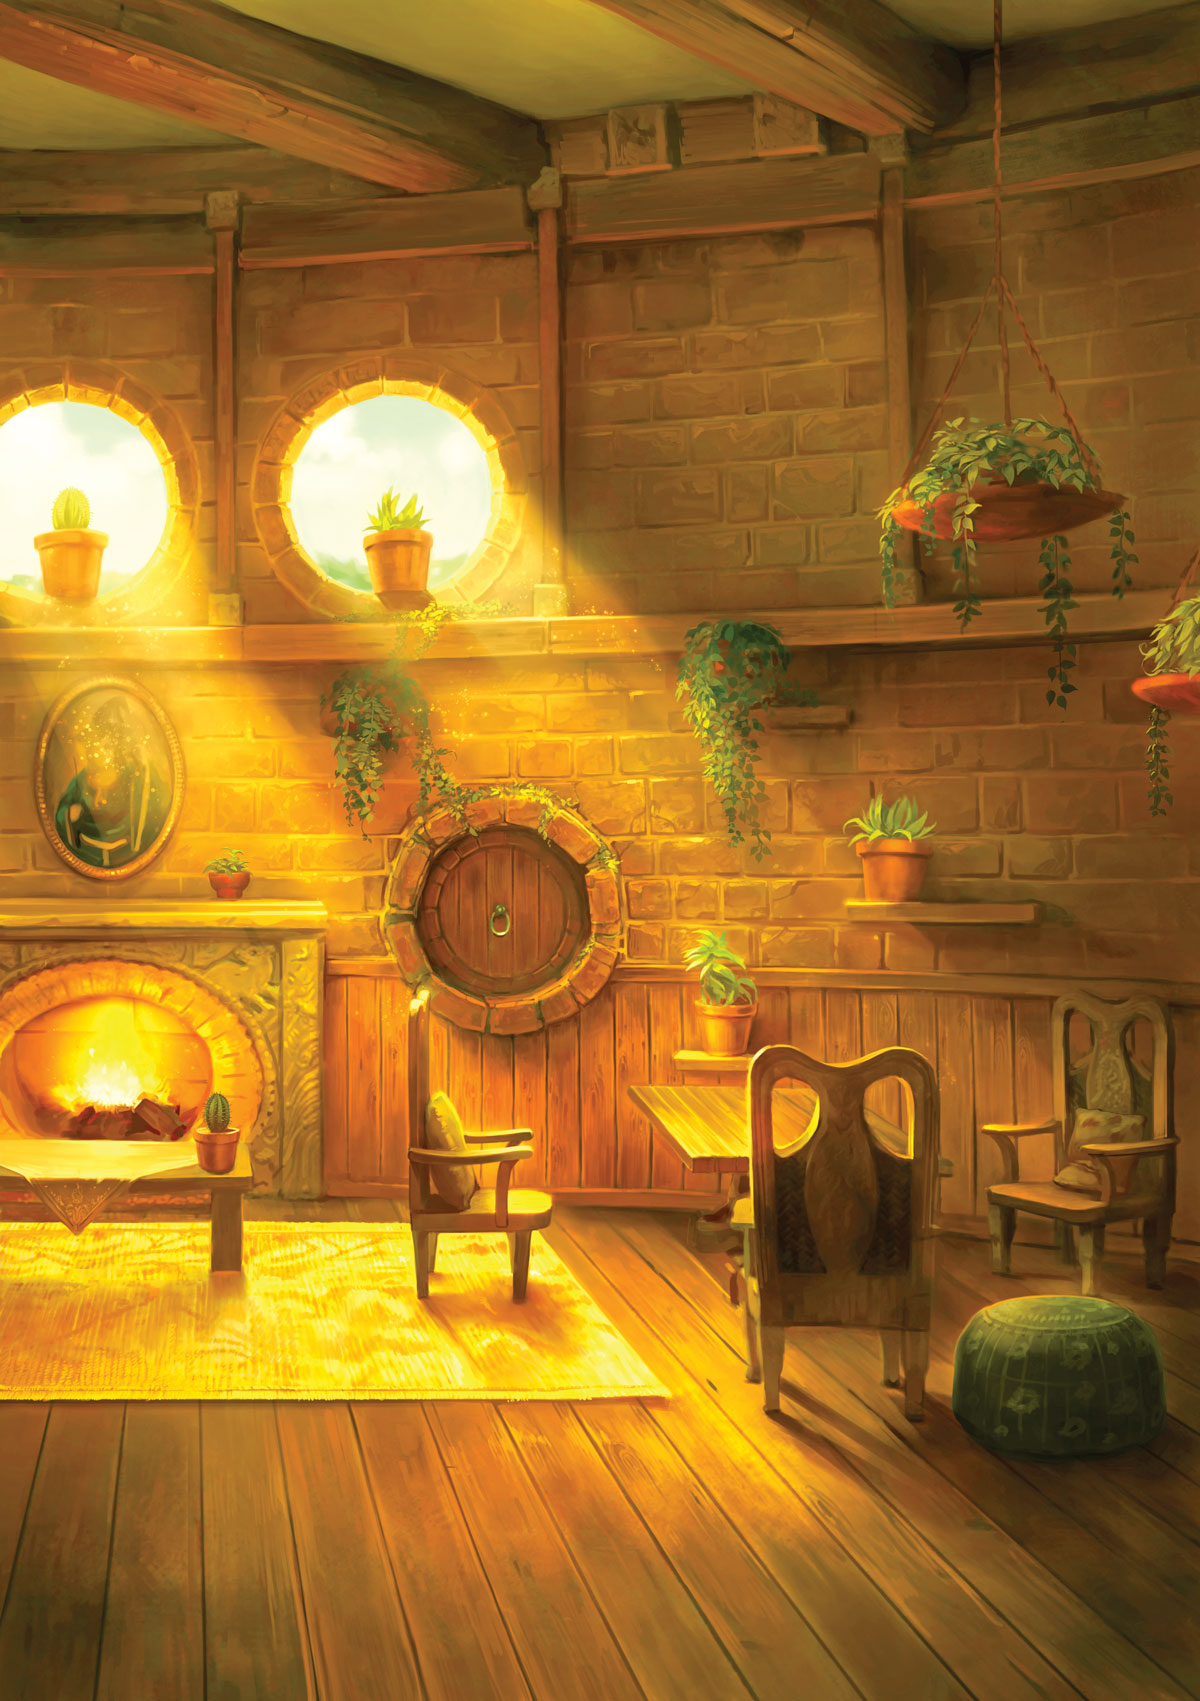 hufflepuff basement harry potter wiki the common room roasters the common room virginia